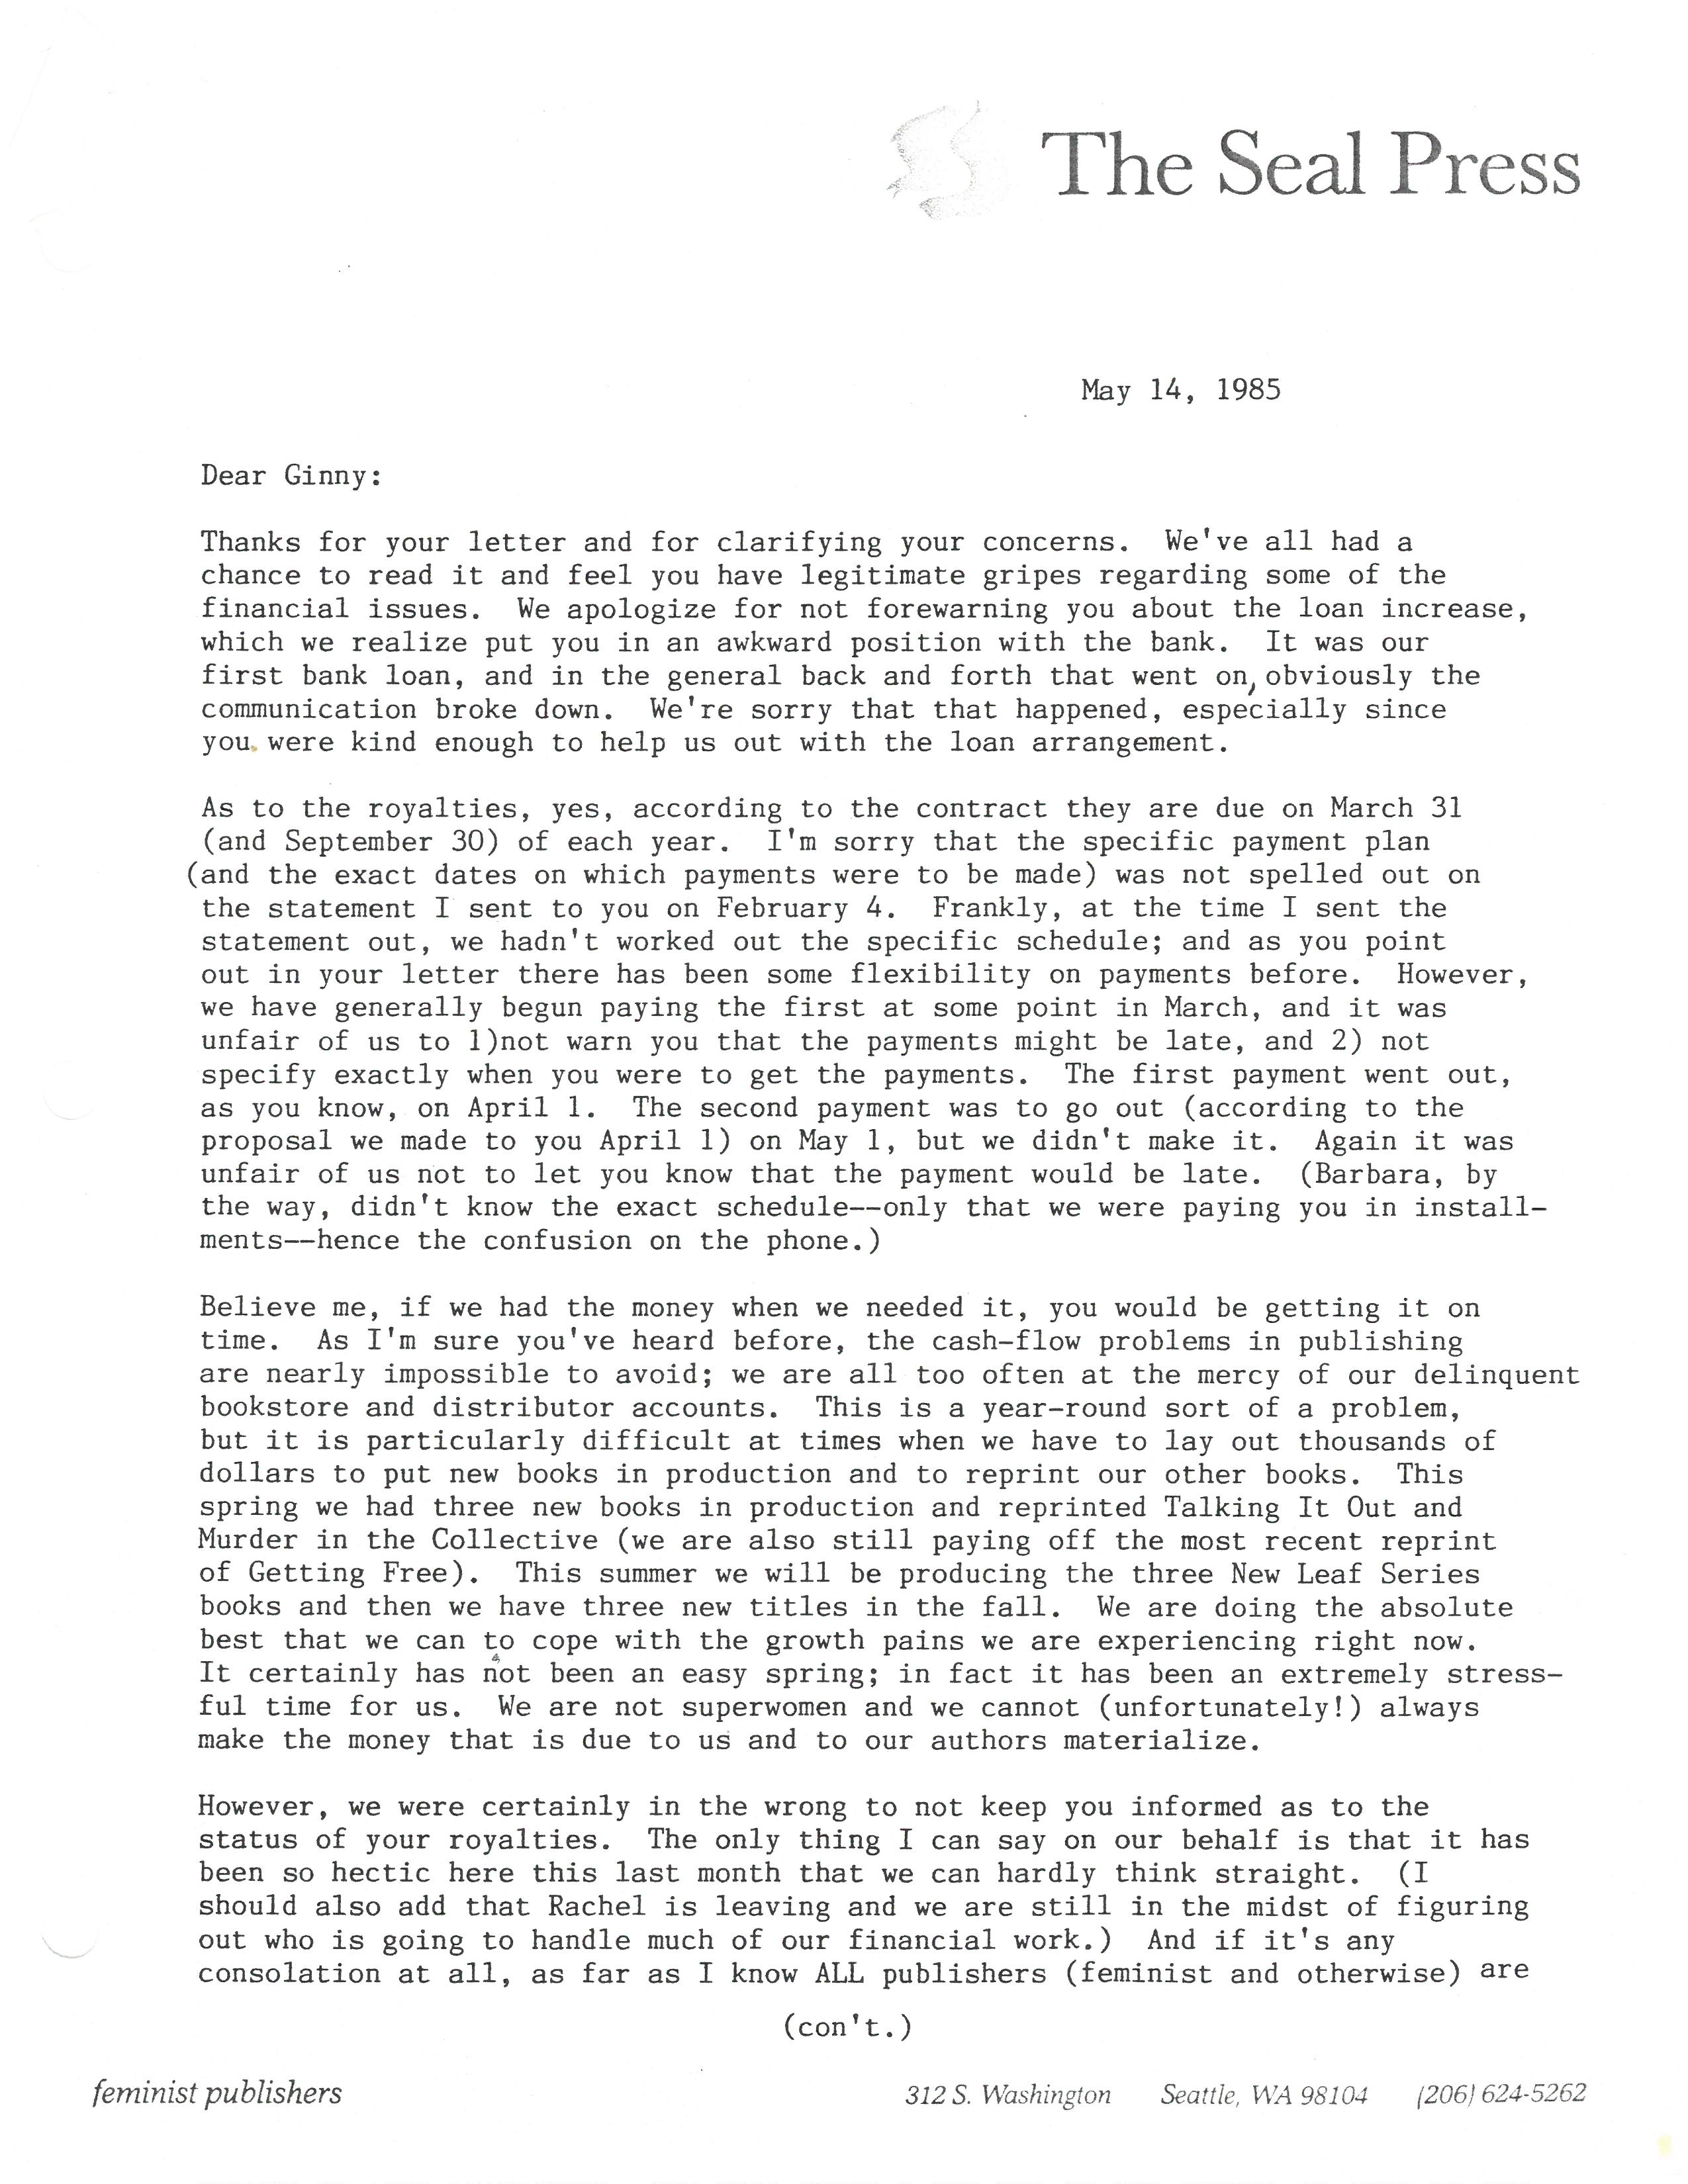 14 may 1985 letter pt 1